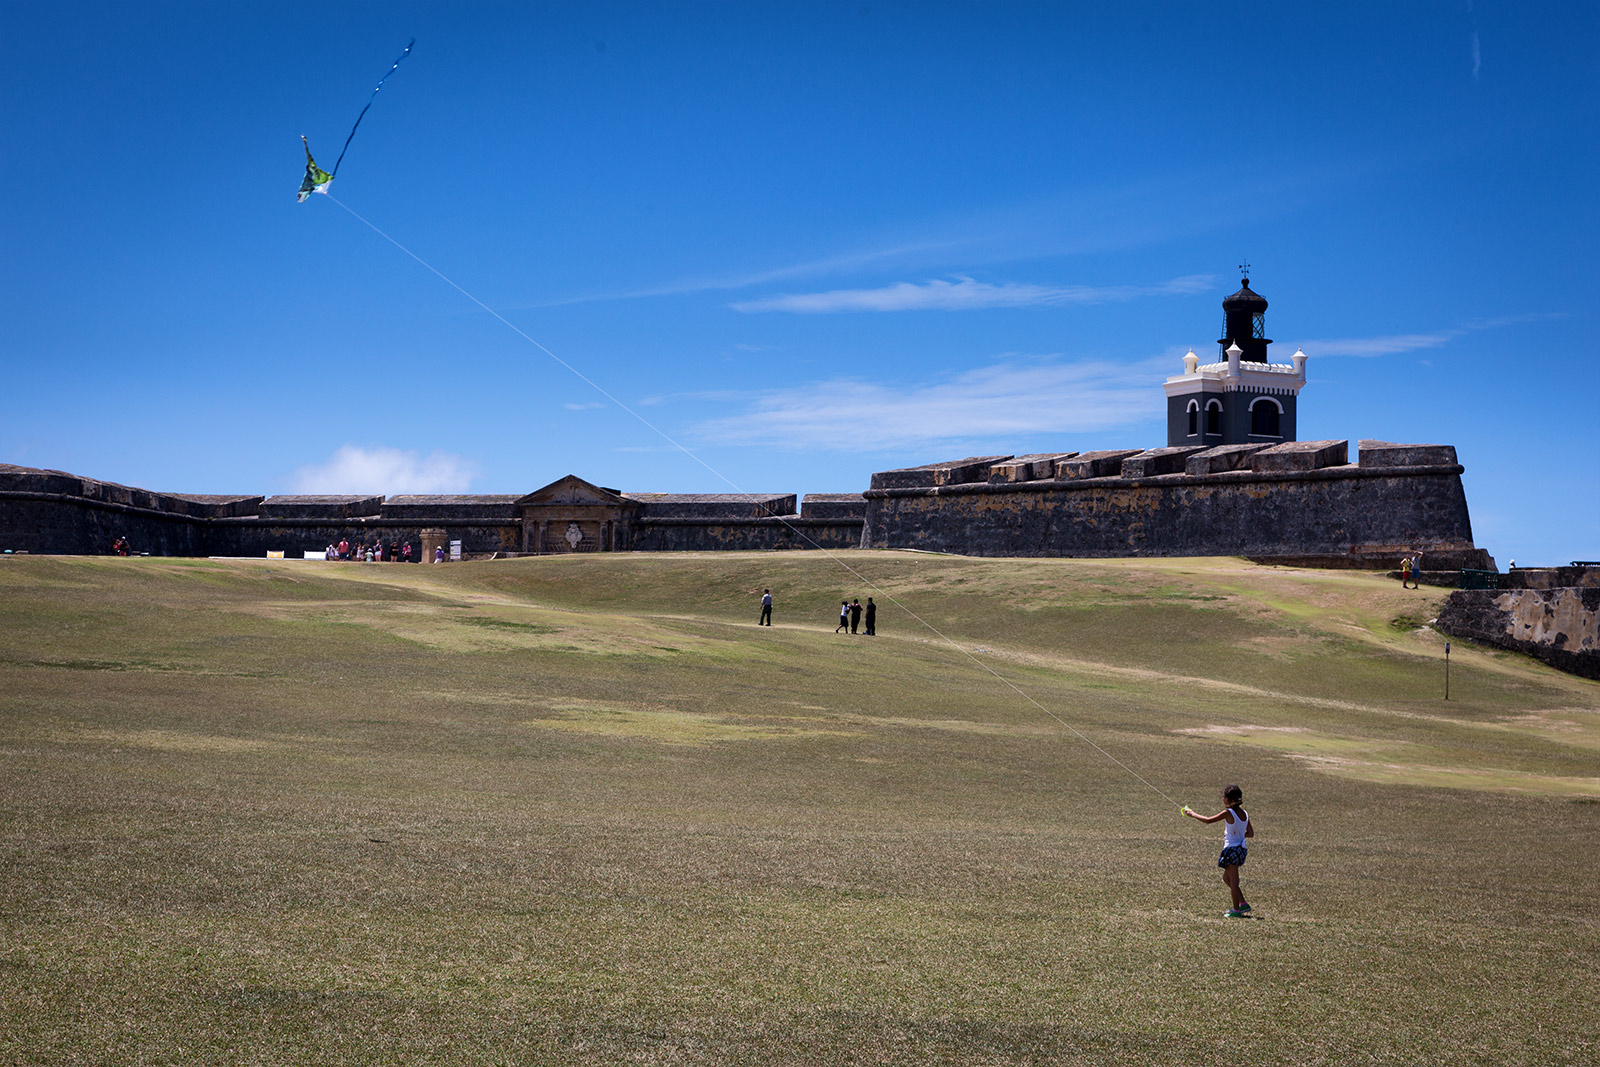 A little girl playing with a kite at El Morro in San Juan